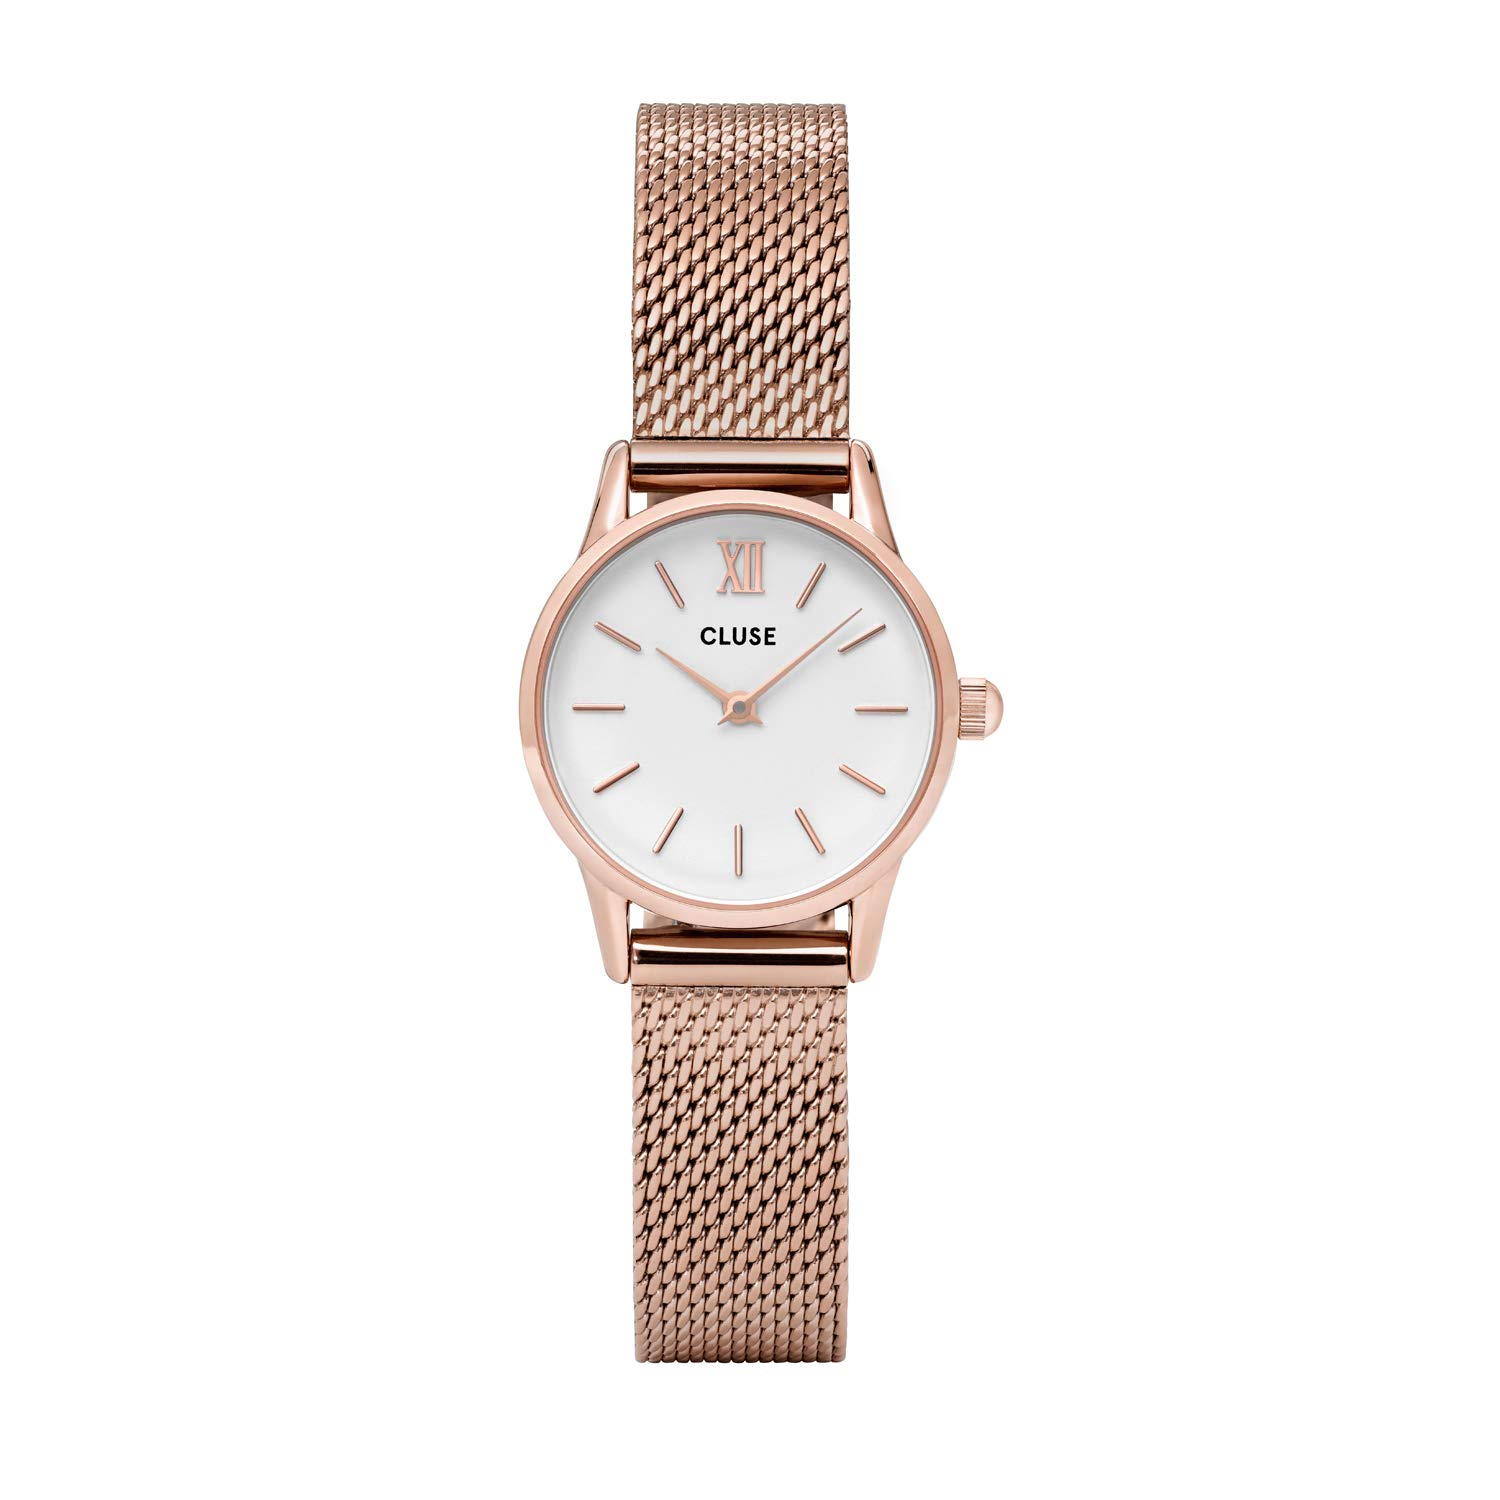 CLUSE Womens Analogue Classic Quartz Connected Wrist Watch with Stainless Steel Strap CL50006